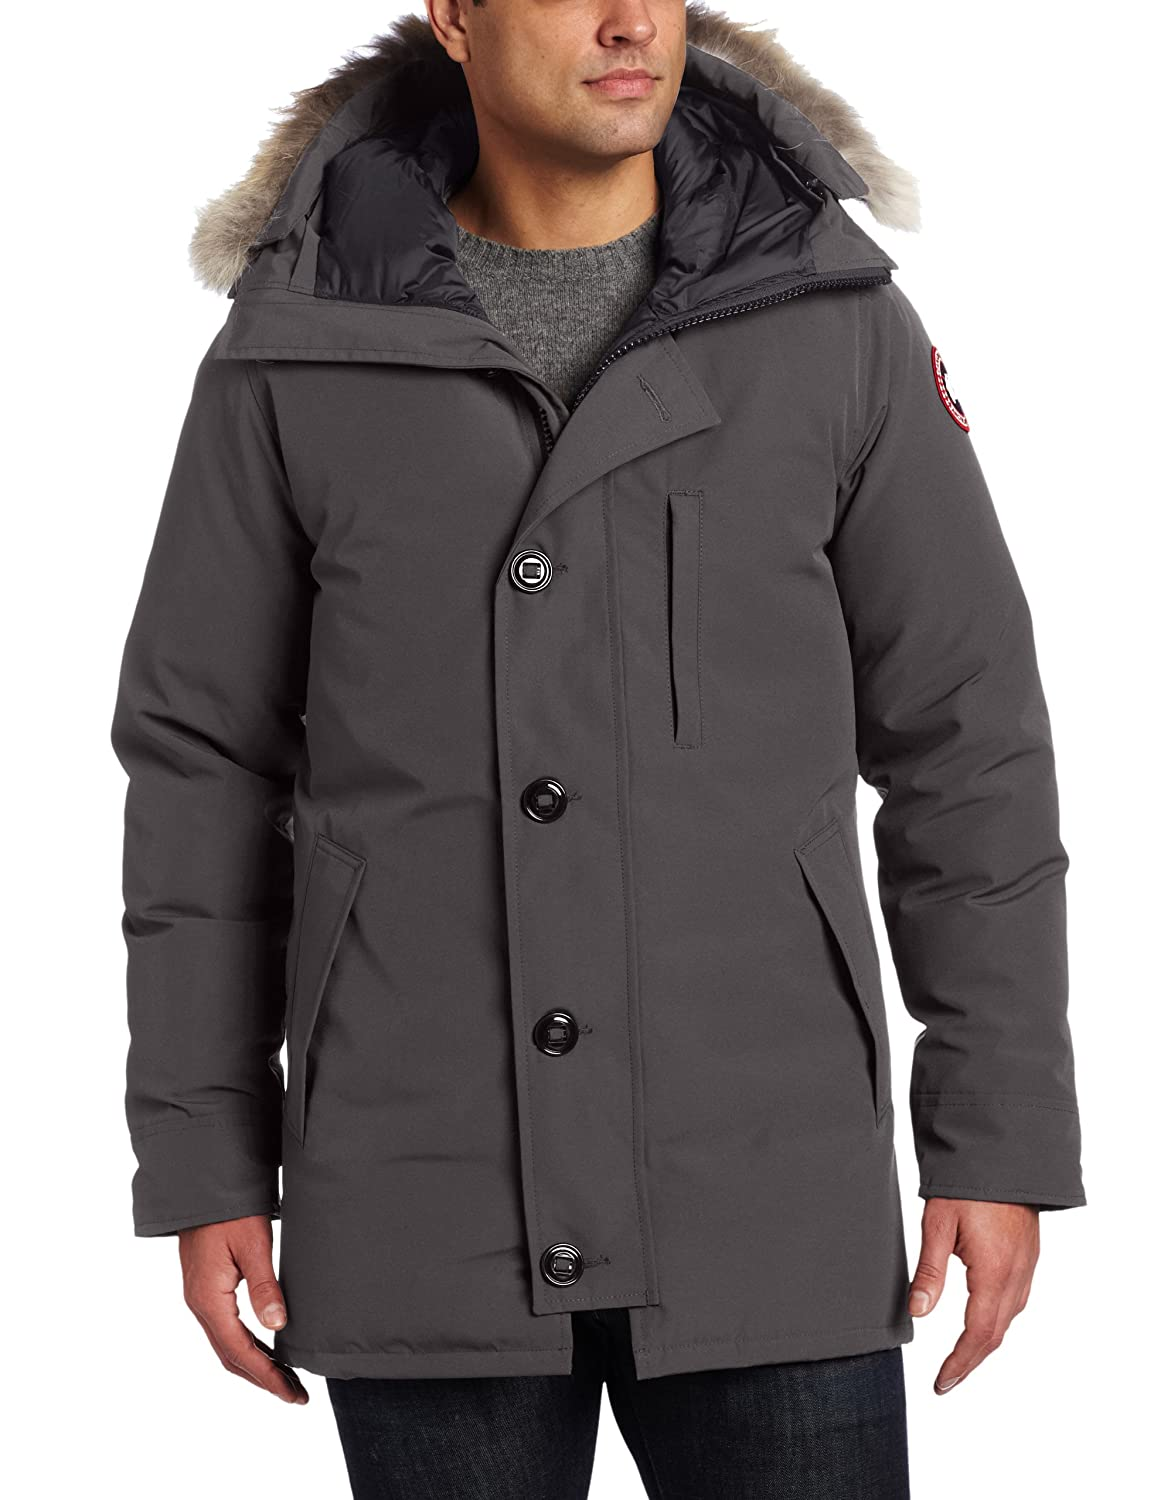 Canada Goose chilliwack parka sale shop - Amazon.com: Canada Goose Men's The Chateau Jacket: Sports & Outdoors